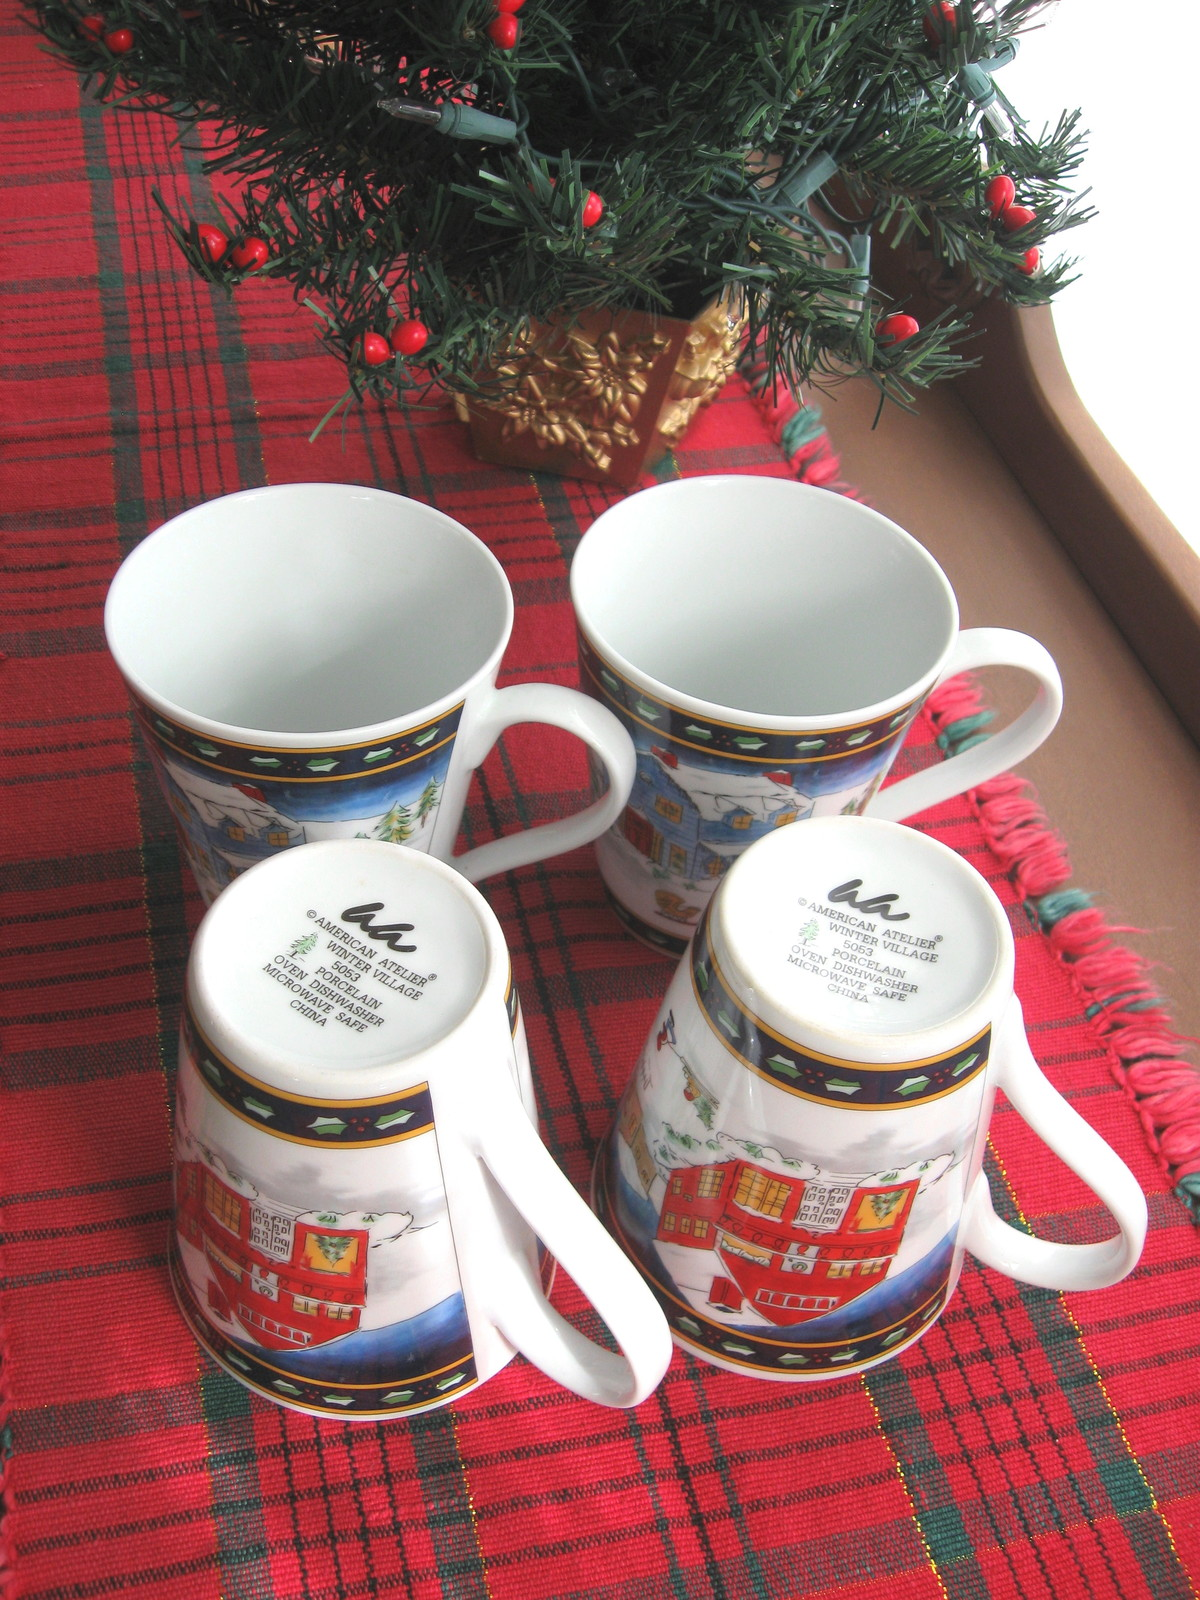 Set of Four (4) American Atelier Winter Village Porcelain Mugs - New in Box